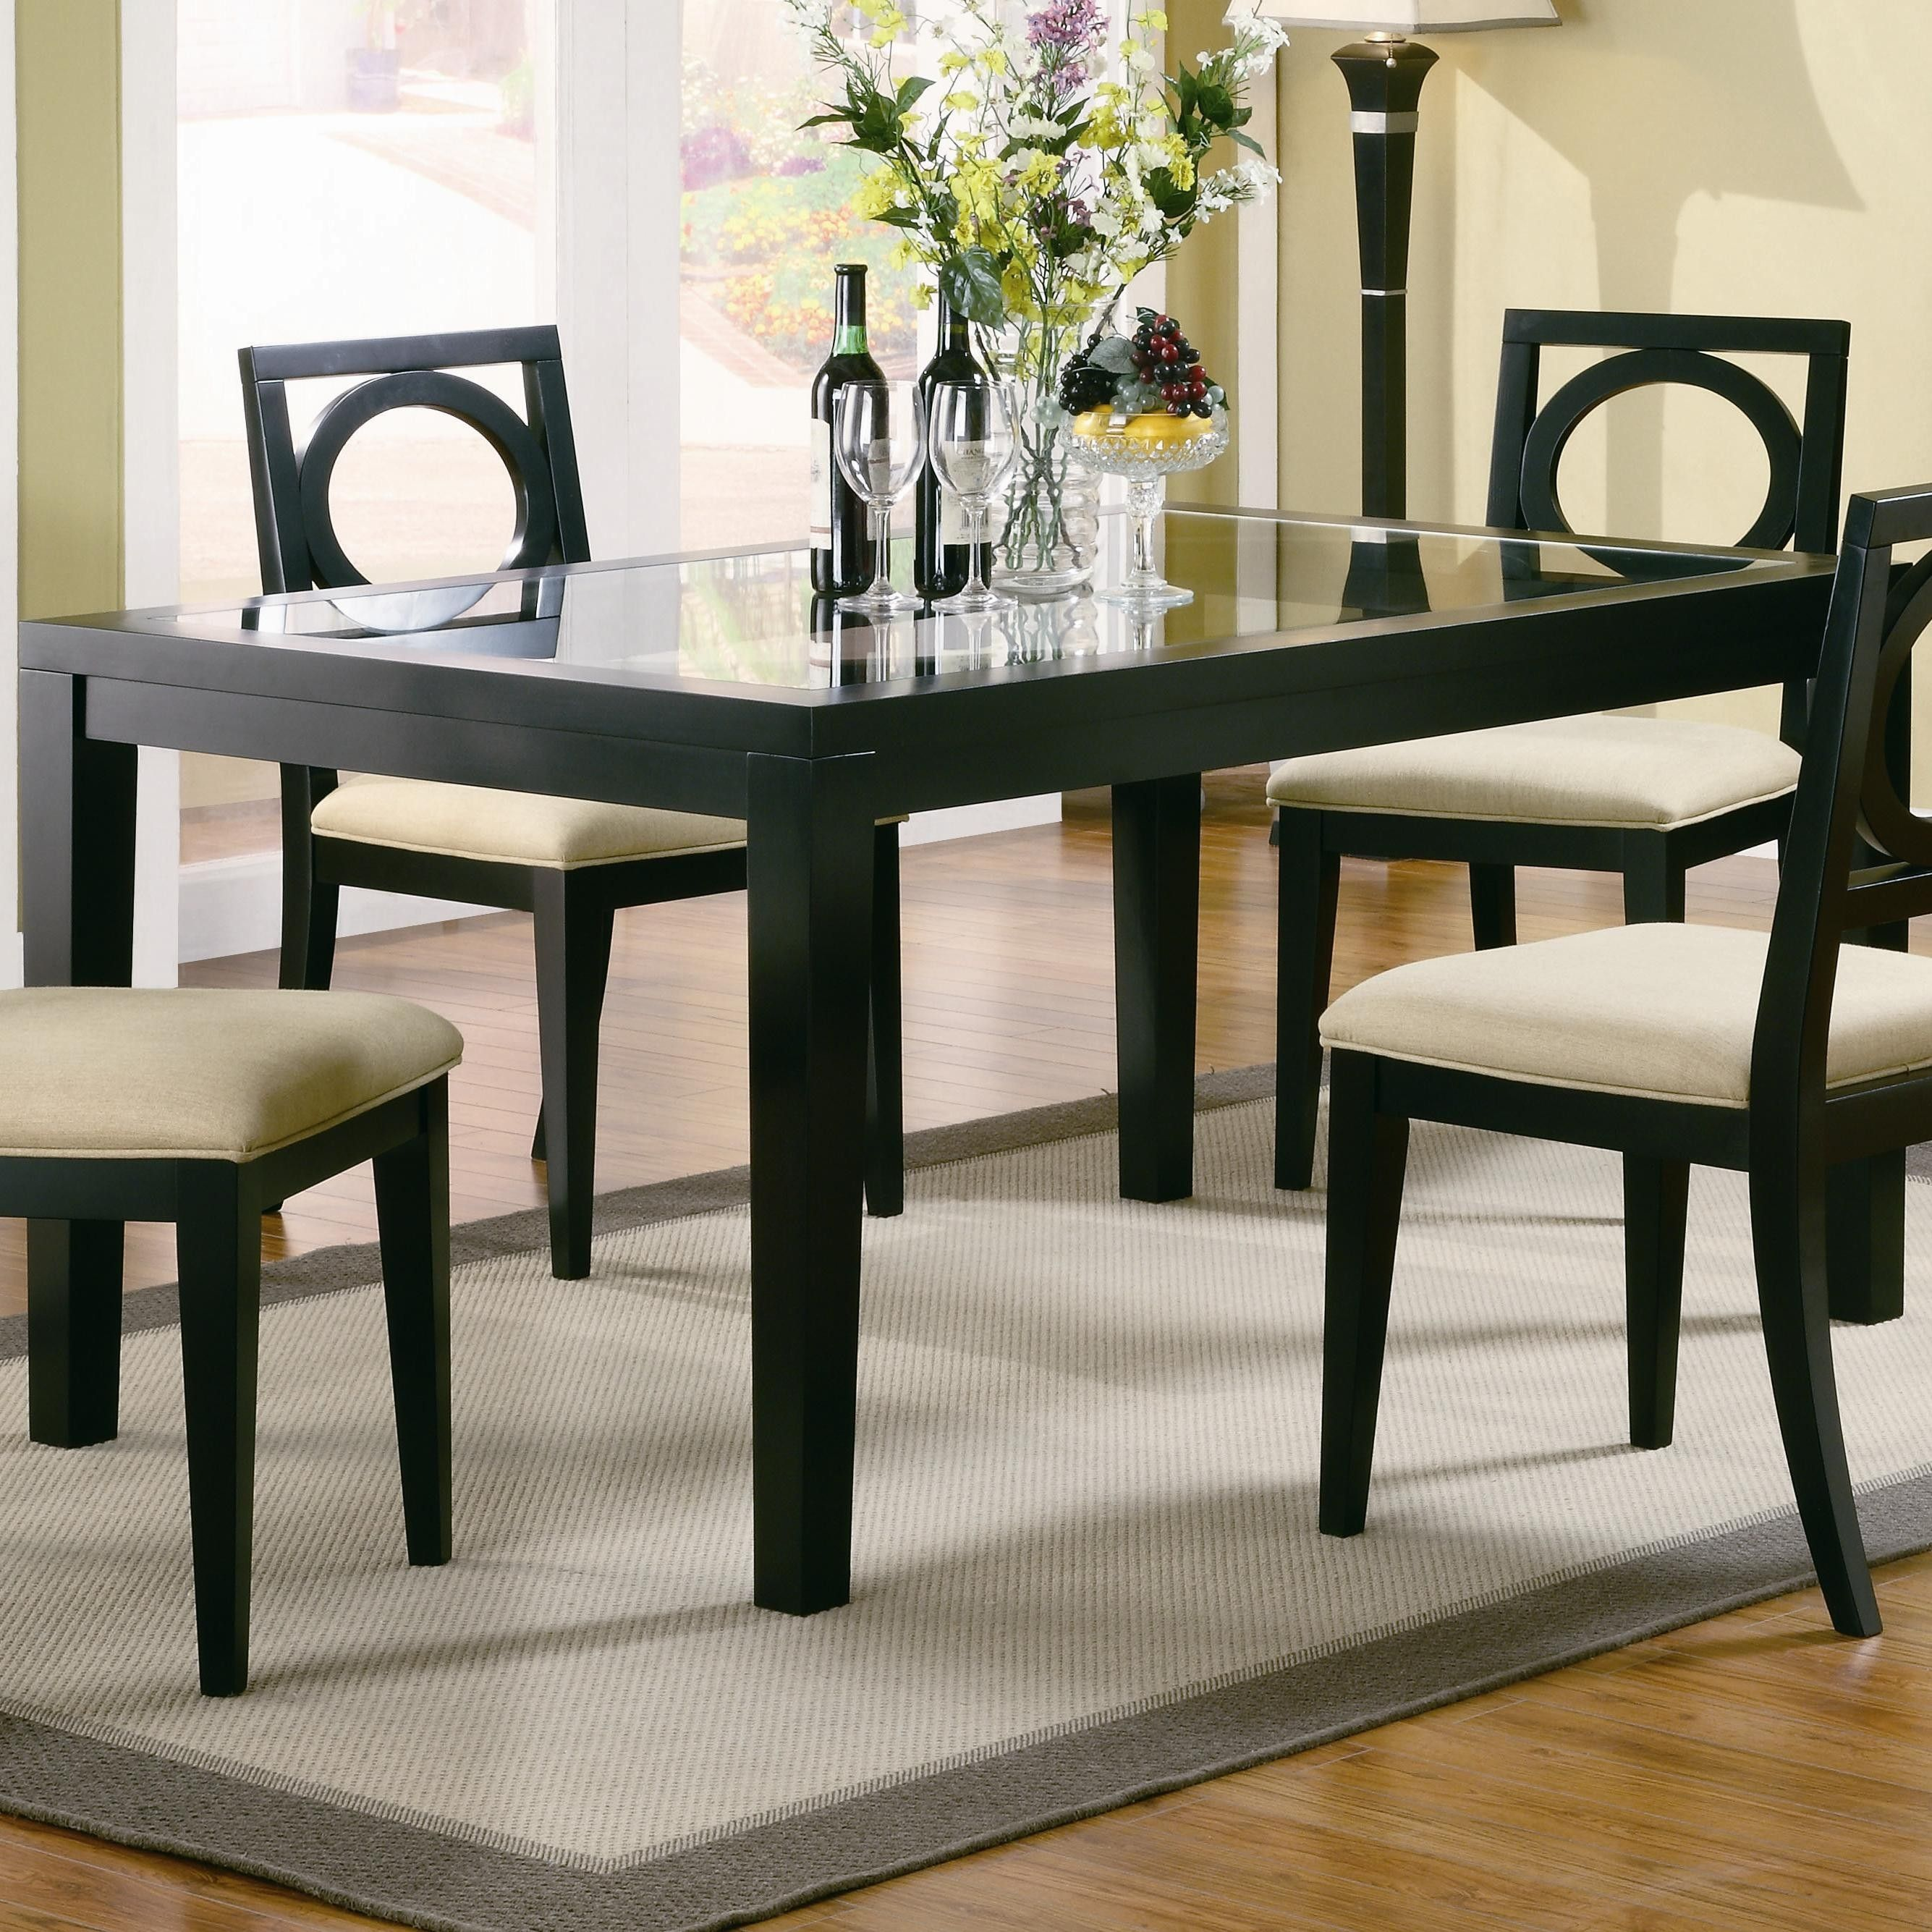 Furnitures Fashion Small Dining Room Furniture Design: Lukas Rectangle Dining Leg Table With Inset Glass Top U